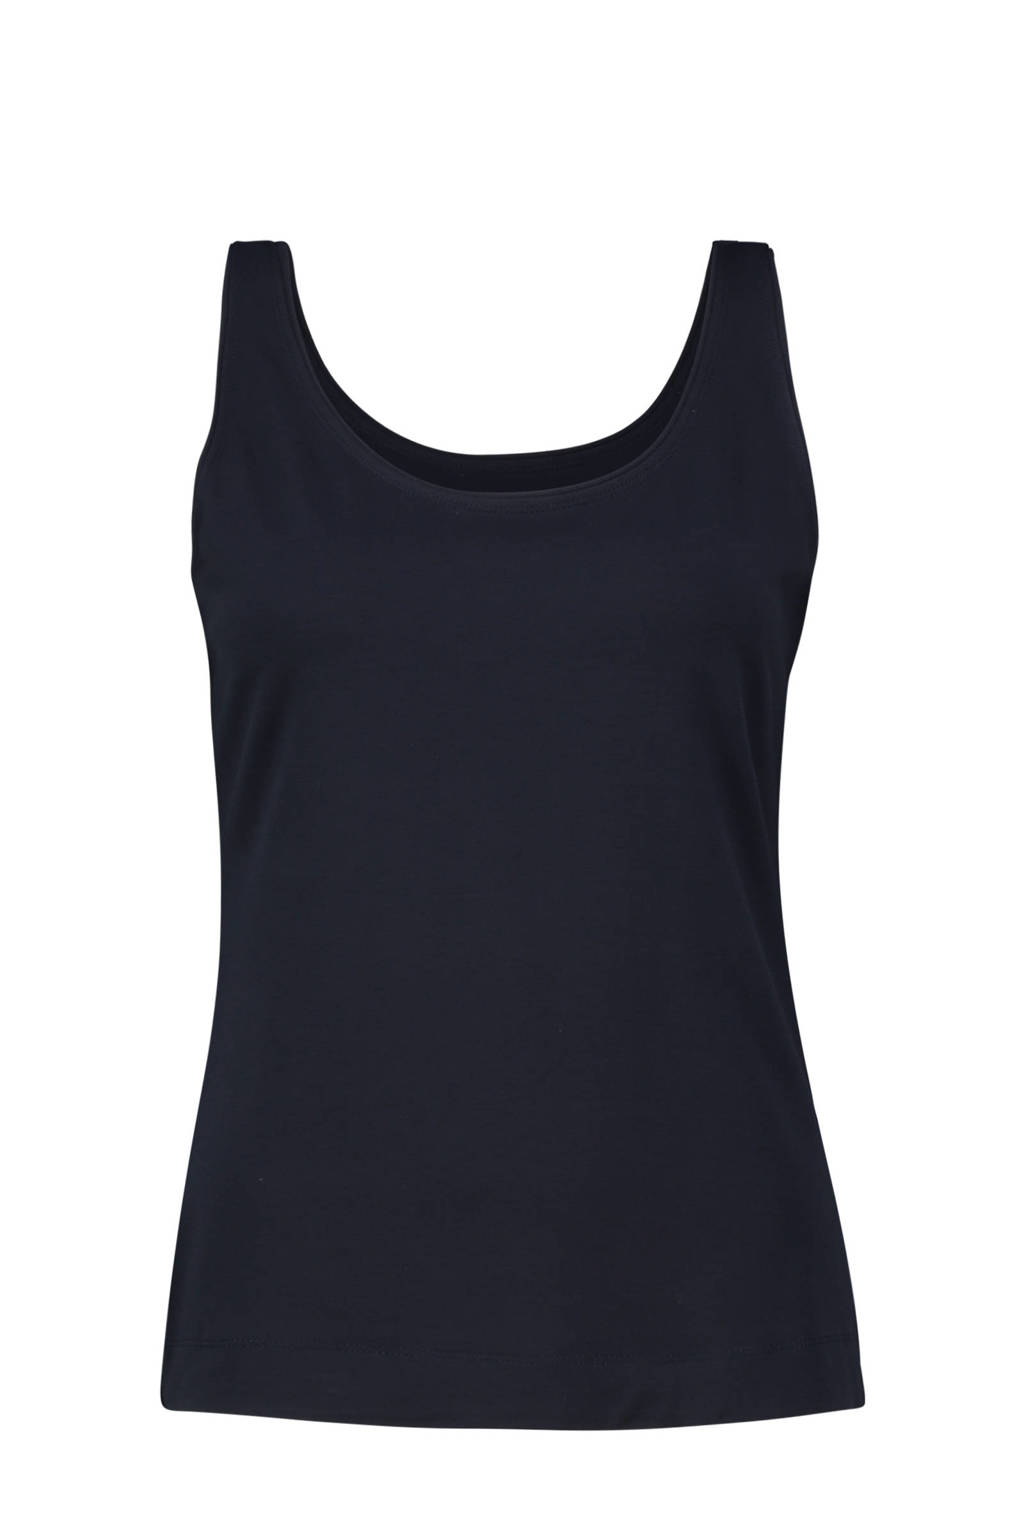 Claudia Sträter top donkerblauw, Donkerblauw